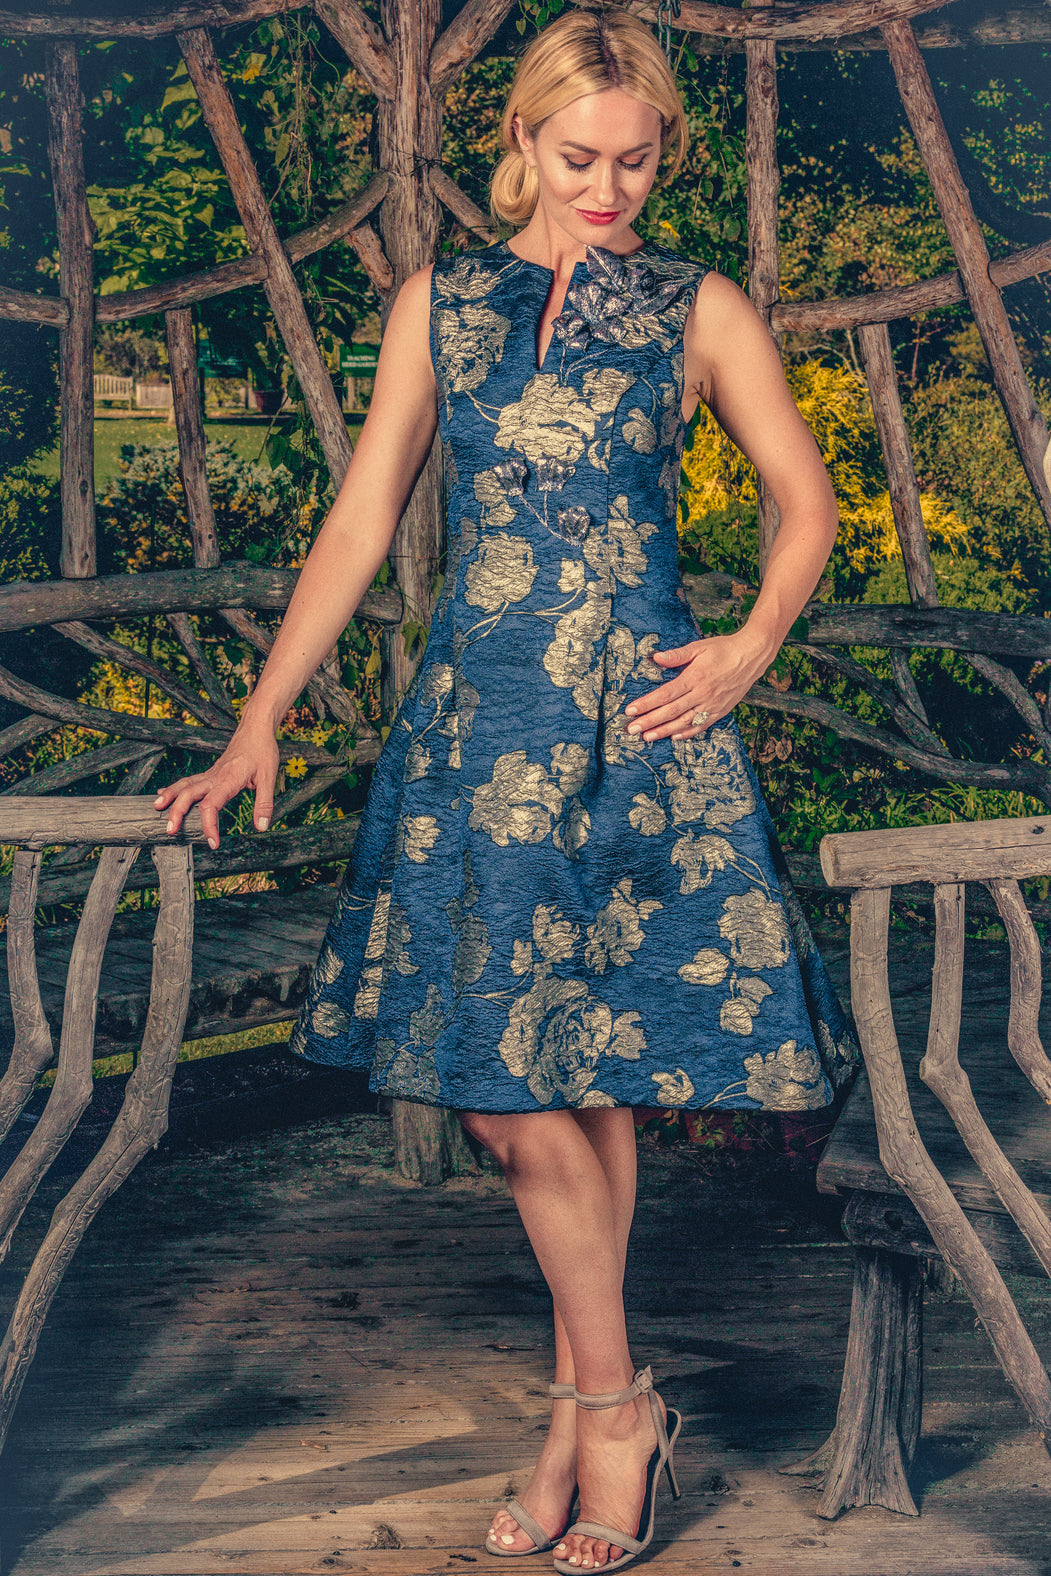 anna nieman designer dress Boston. A dress made from Swiss metallic brocade, with a fit-and-flare silhouette, has the comfort of weightless fabric with three-dimensional silvery / navy pattern.